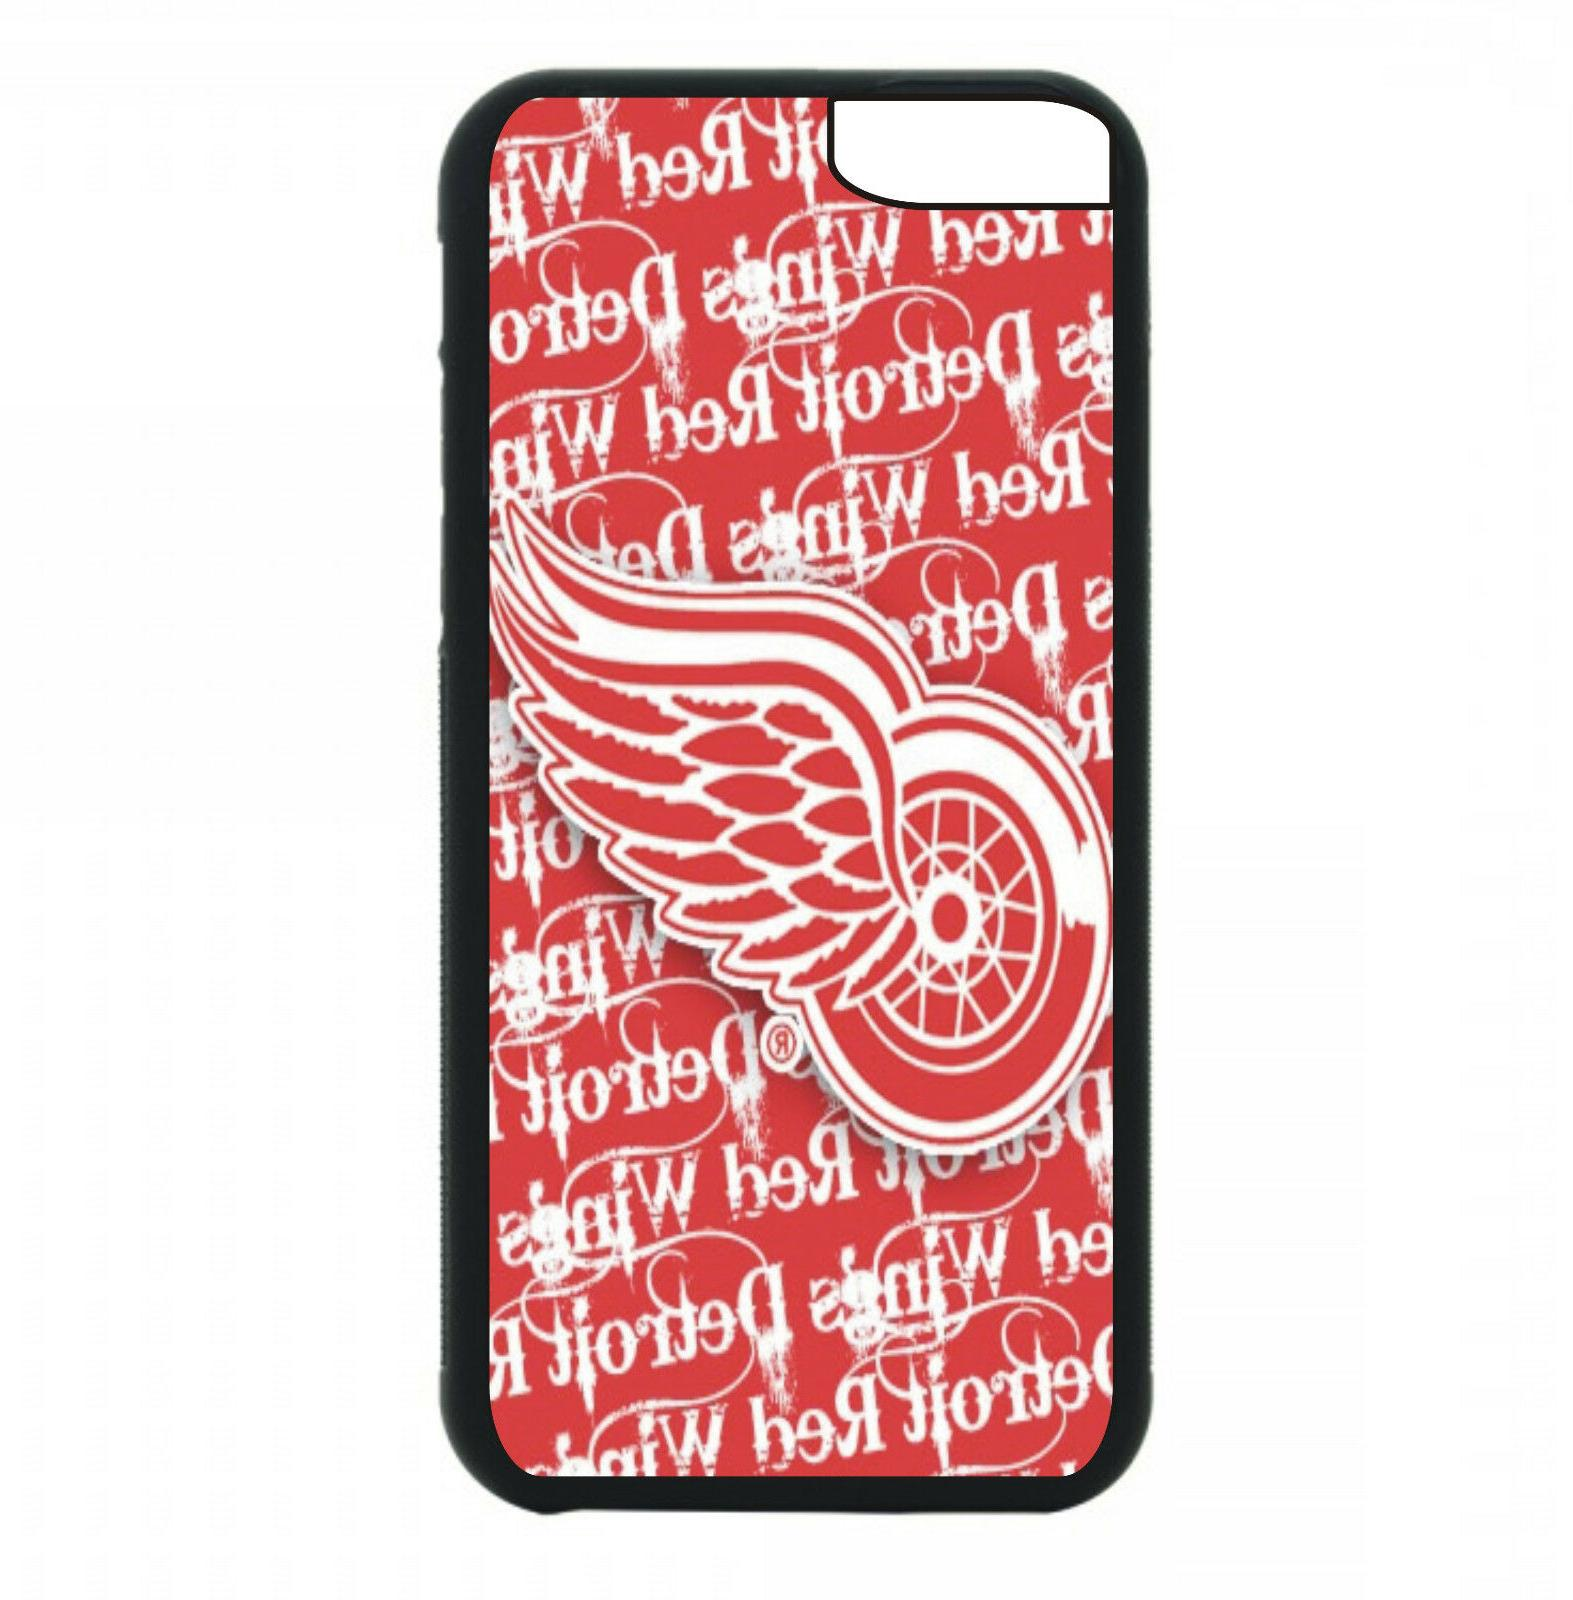 detroit red wings phone case for iphone